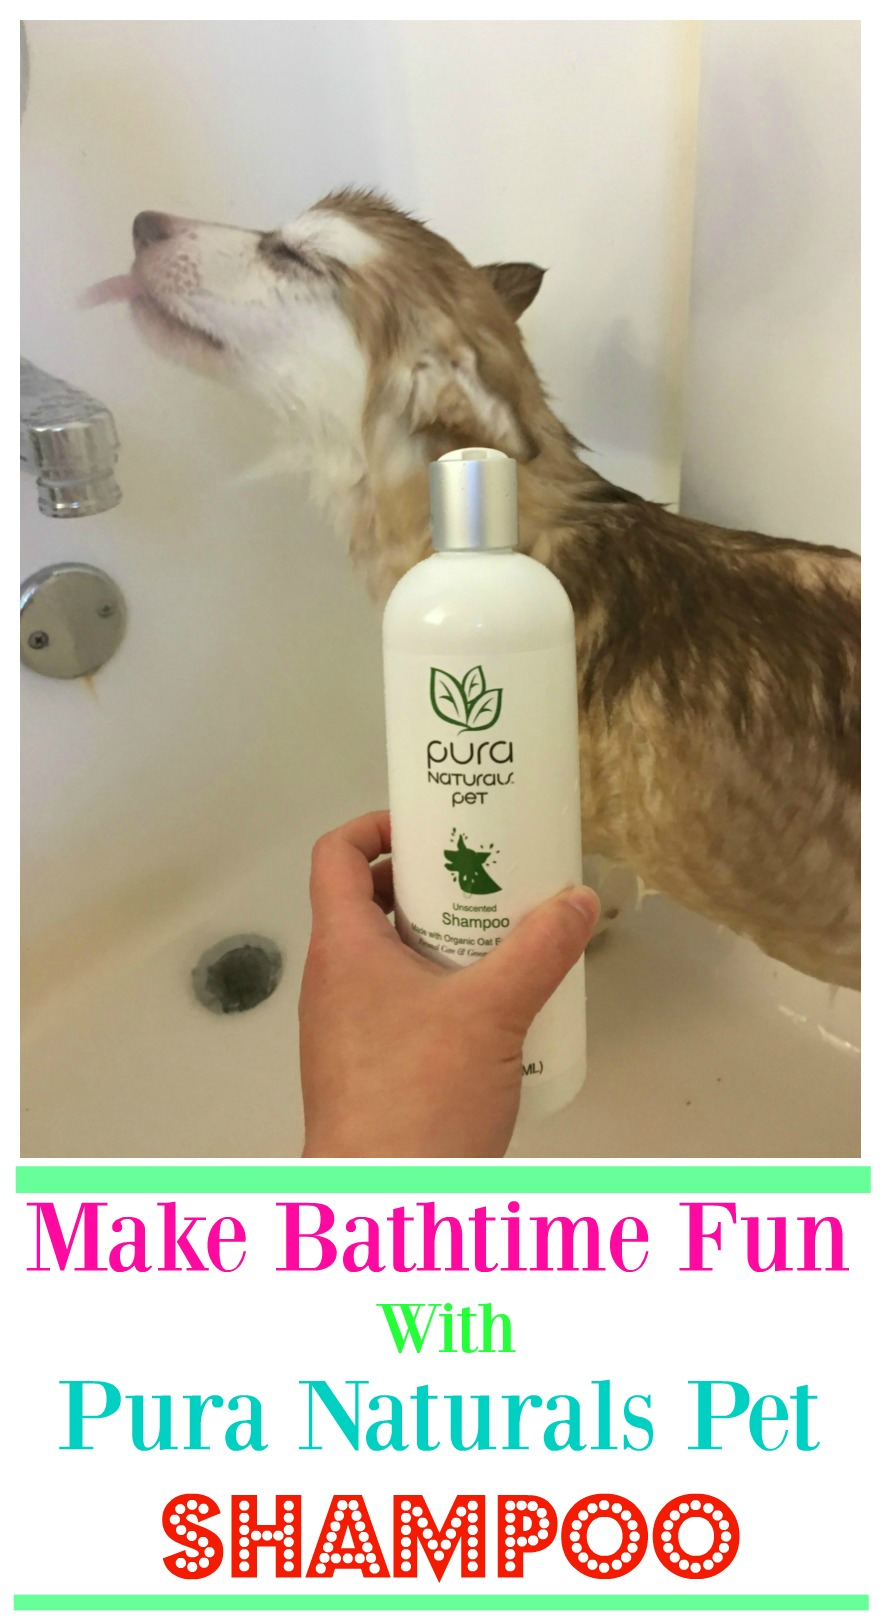 Looking for a natural shampoo that is perfect for both puppies & dogs? See what we think of Pura Naturals Pet line of dog shampoos here!